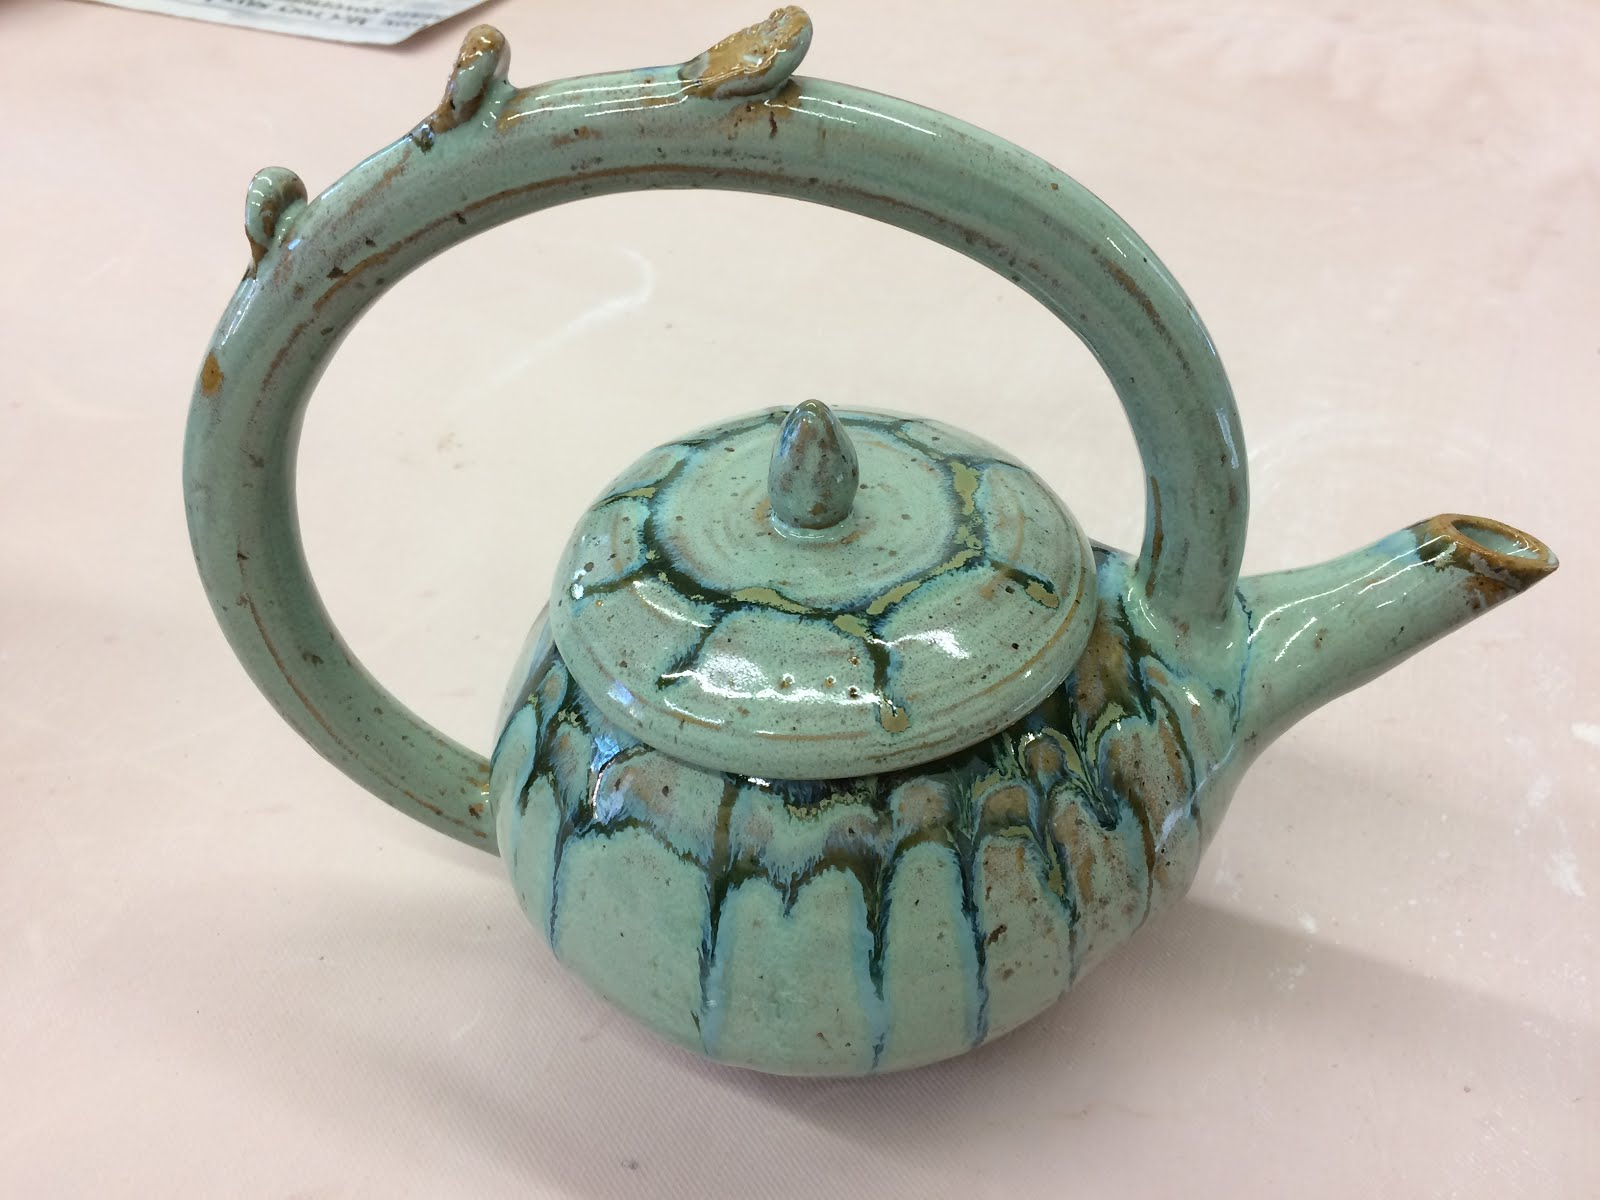 Teapot with Celtic Cross knobs, turquoise glaze, 12 inches tall by 14 inches wide